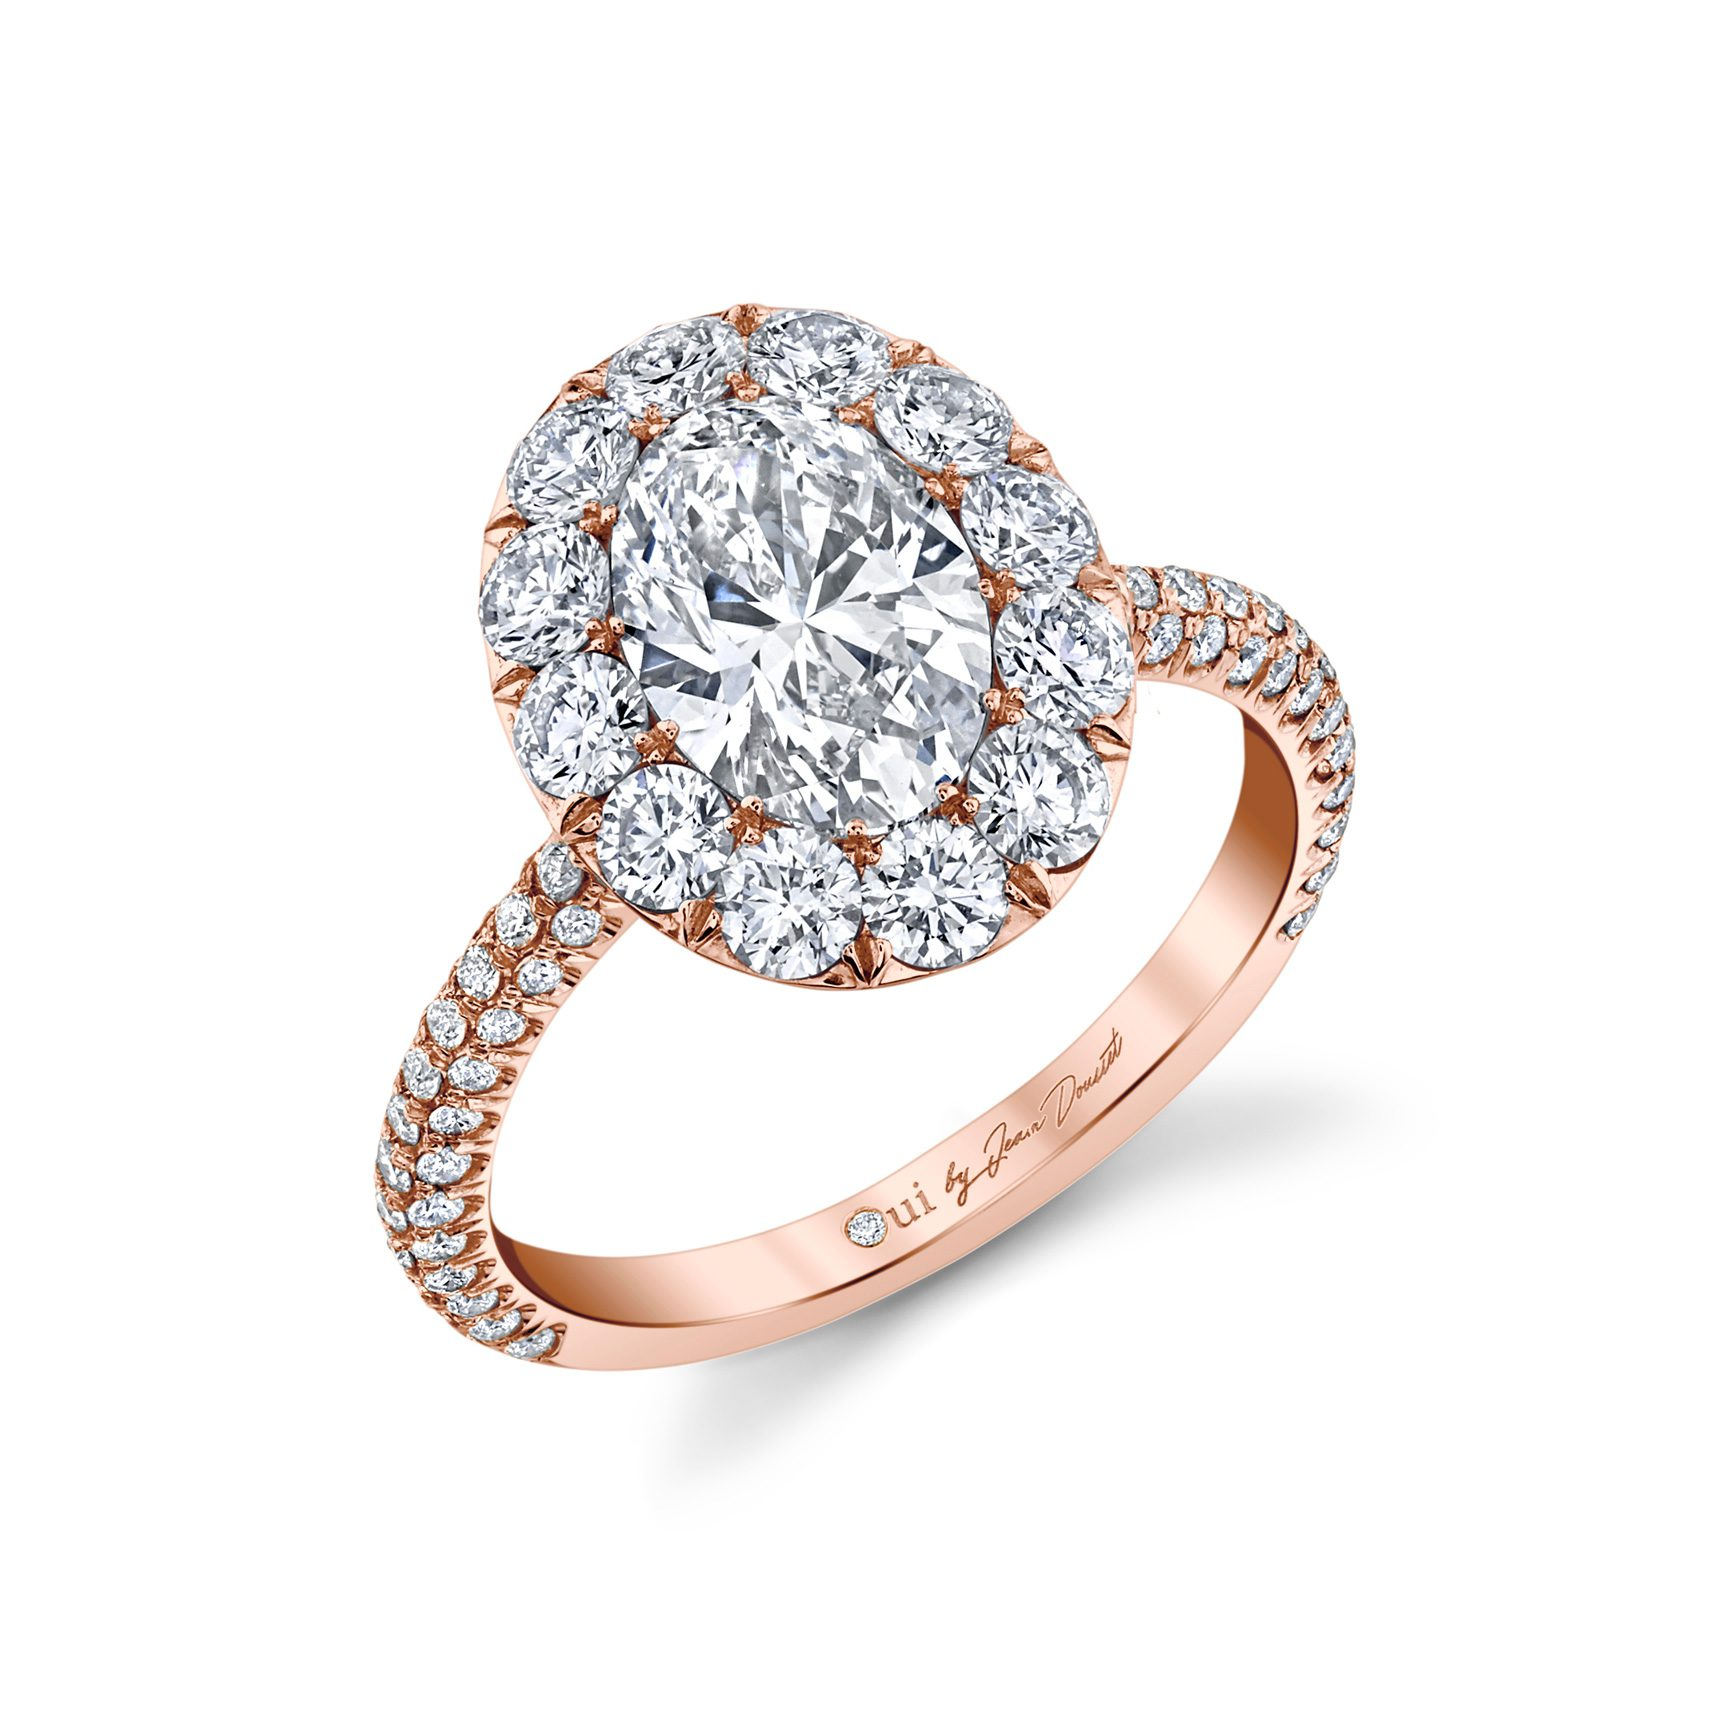 Jacqueline Floating Oval Seamless Solitaire® Engagement Ring with diamond pavé in 18k Rose Gold Profile View by Oui by Jean Dousset